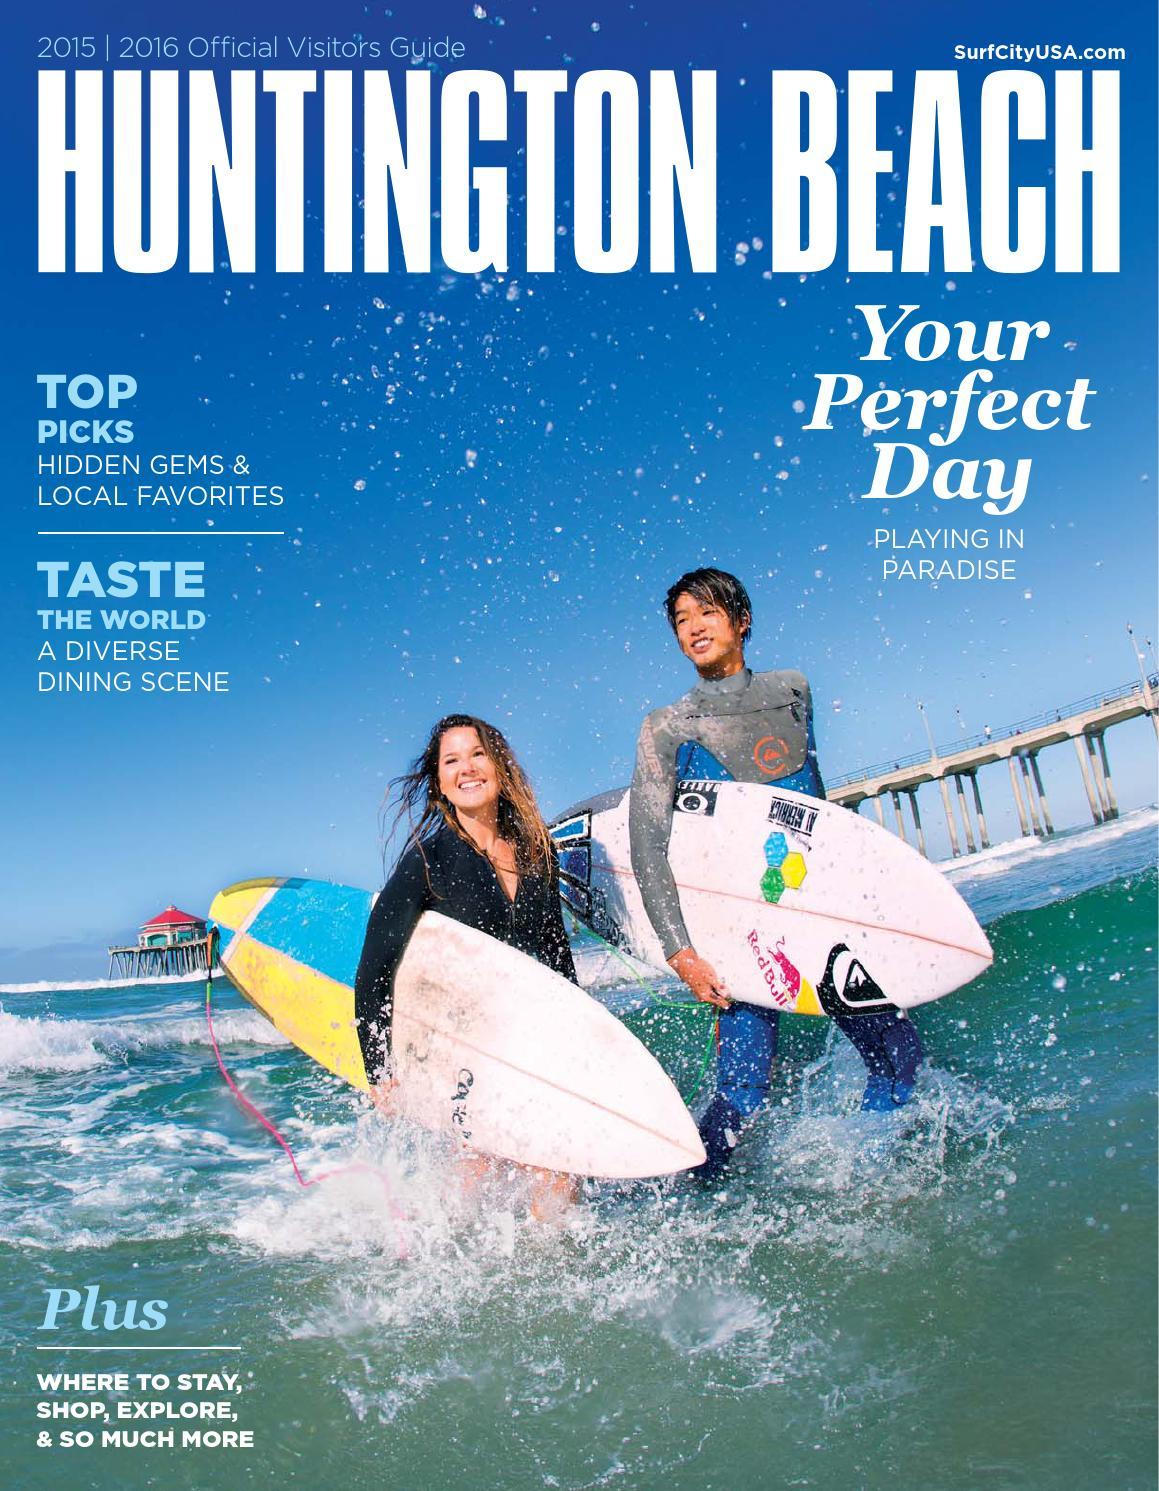 Cucina Alessa Huntington Beach Happy Hour Huntington Beach 2015 2016 Official Visitors Guide By Orange